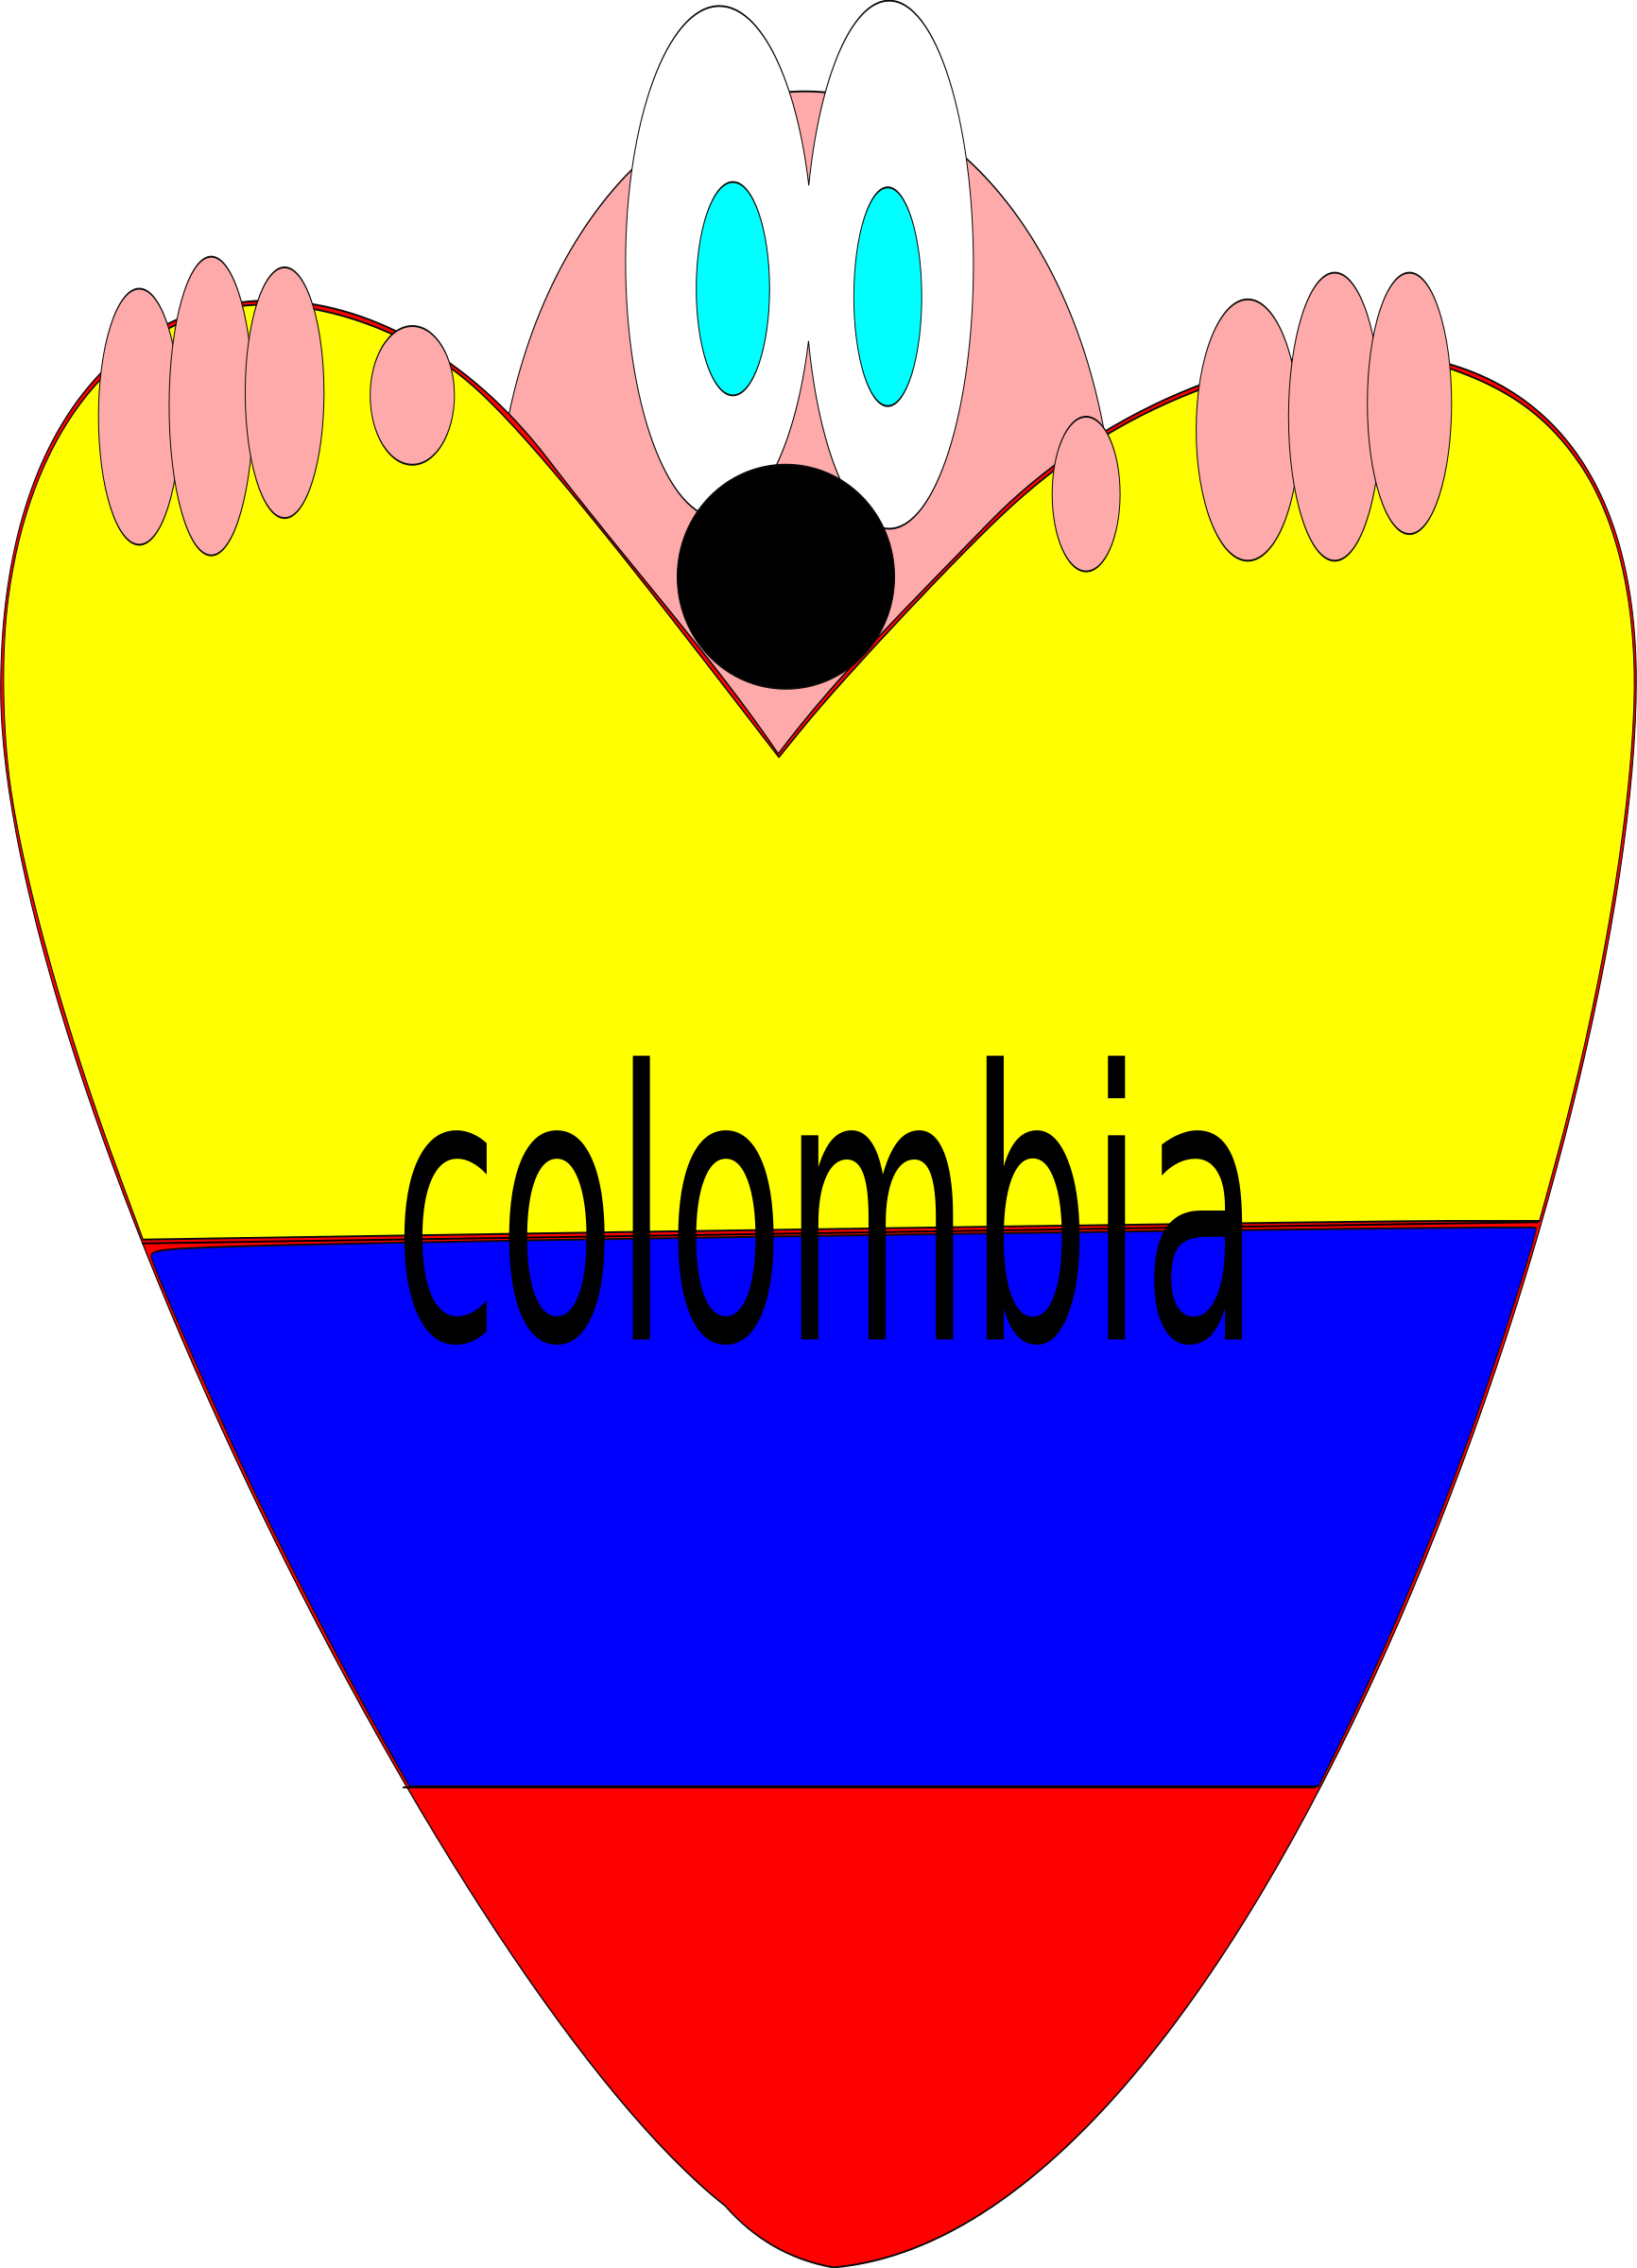 colombia by jamm vj